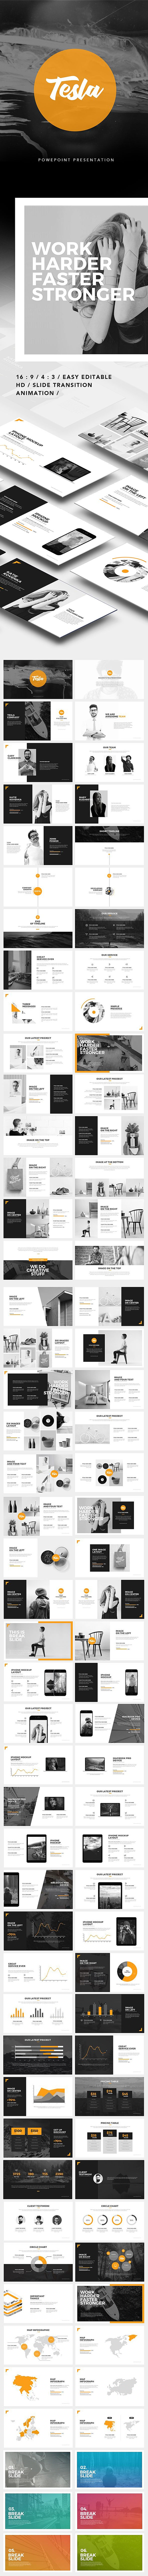 PPT  Tesla Powerpoint Presentation  Template • Click here to download ! http://graphicriver.net/item/tesla-powerpoint-presentation/16244660?ref=pxcr